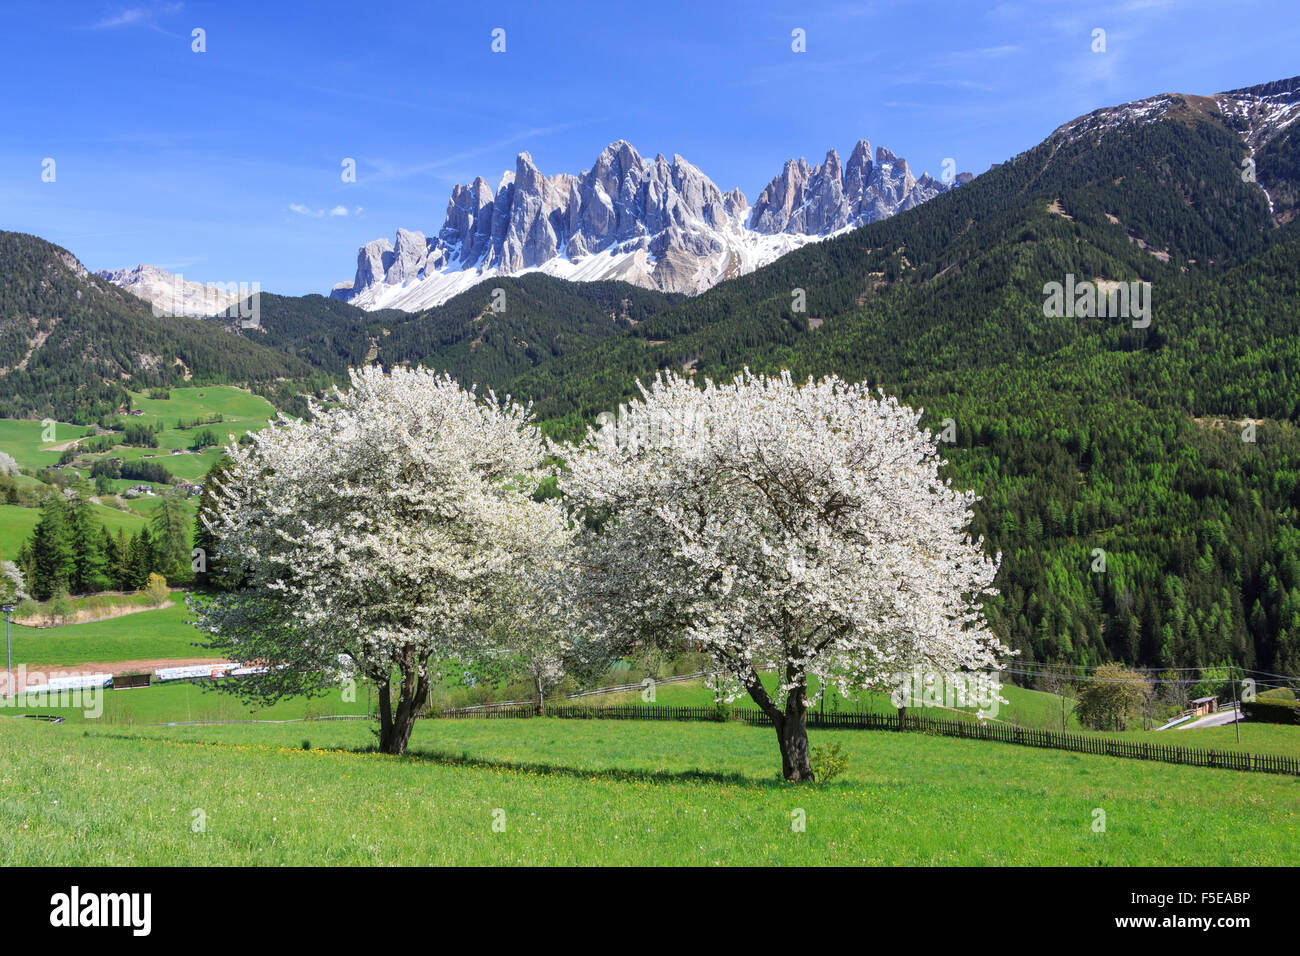 The Odle in background enhanced by flowering trees, Funes Valley, South Tyrol, Dolomites, Italy, Europe - Stock Image